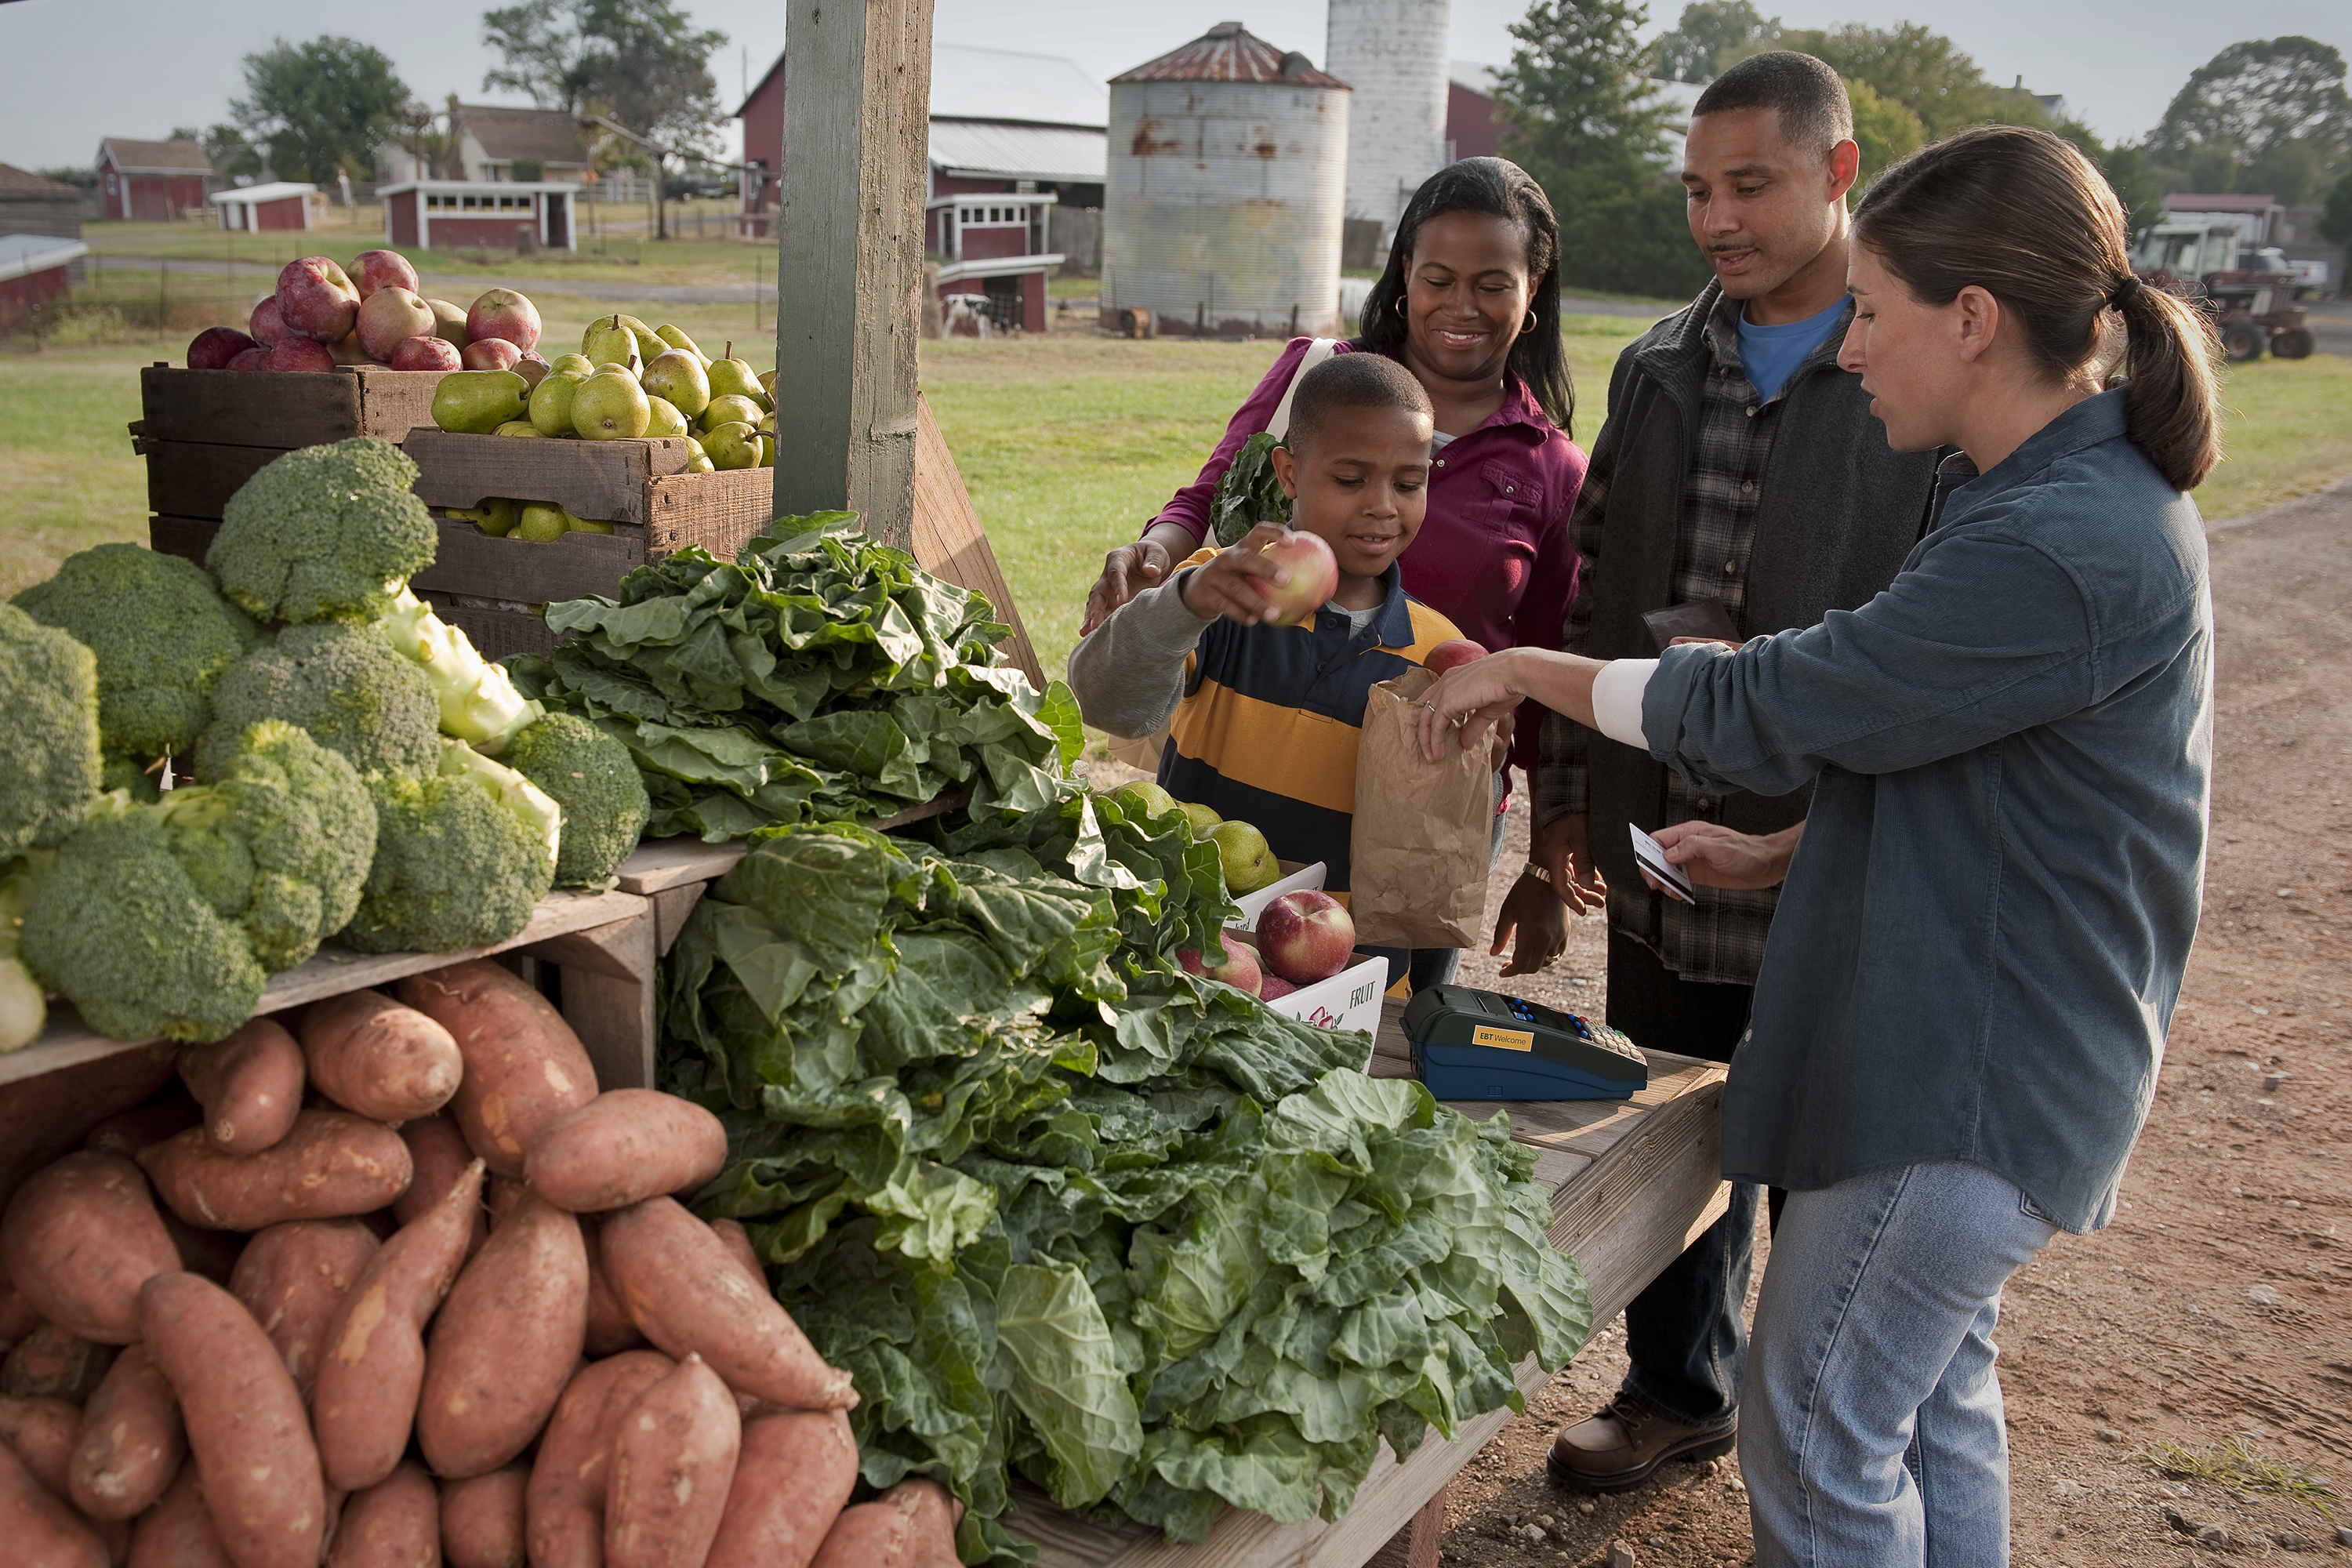 A family purchases produce from a farmers market vendor. (SNAP-Ed Photo Gallery, USDA)